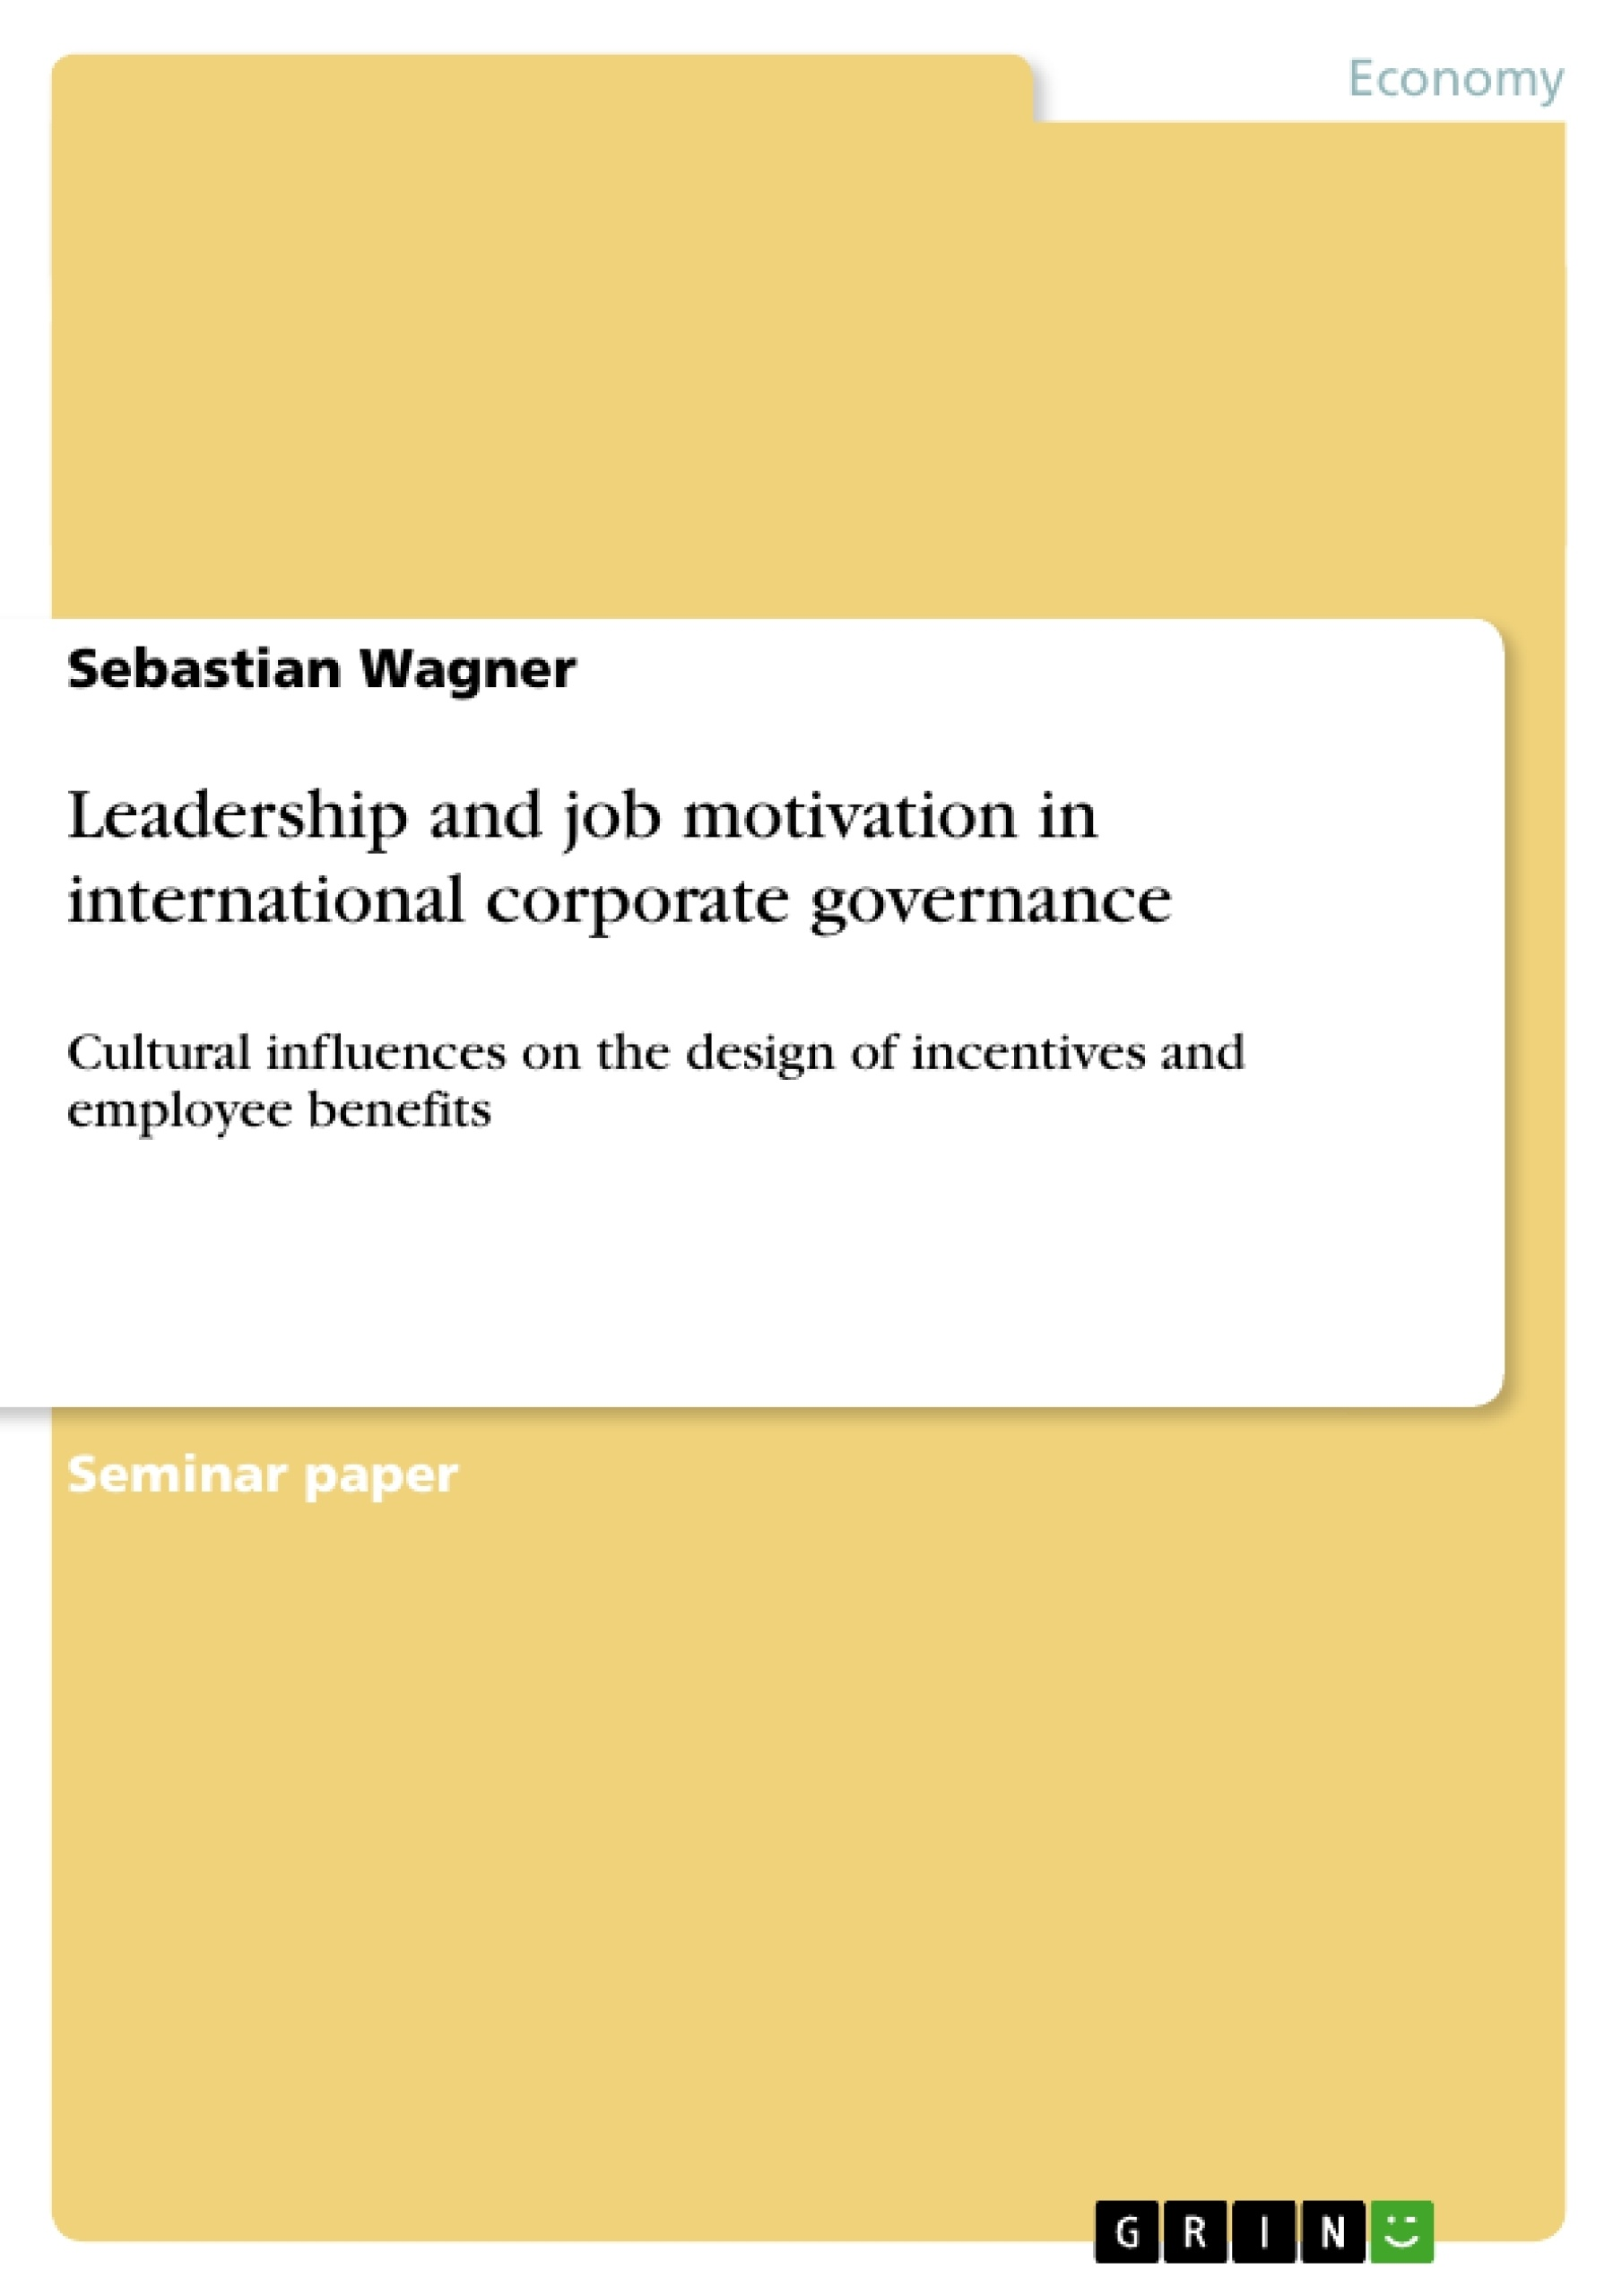 Title: Leadership and job motivation in international corporate governance